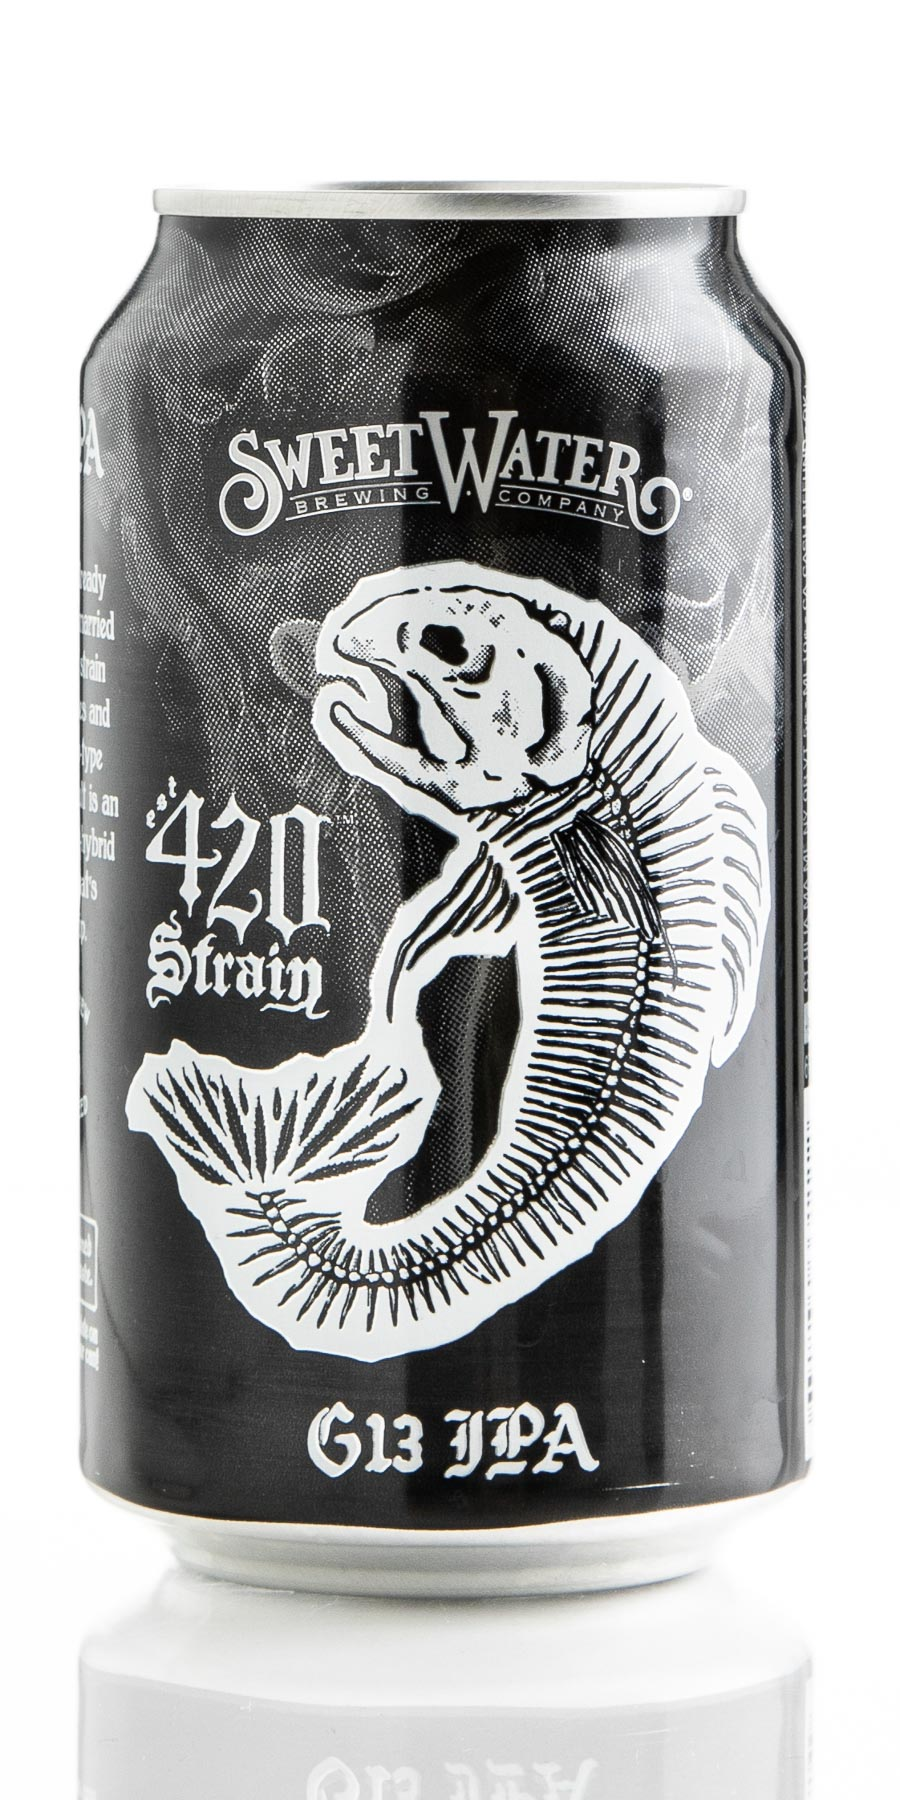 Sweetwater Brewing Company Logo Sticker G13 IPA 420 Strain Cannabis Craft Beer!!